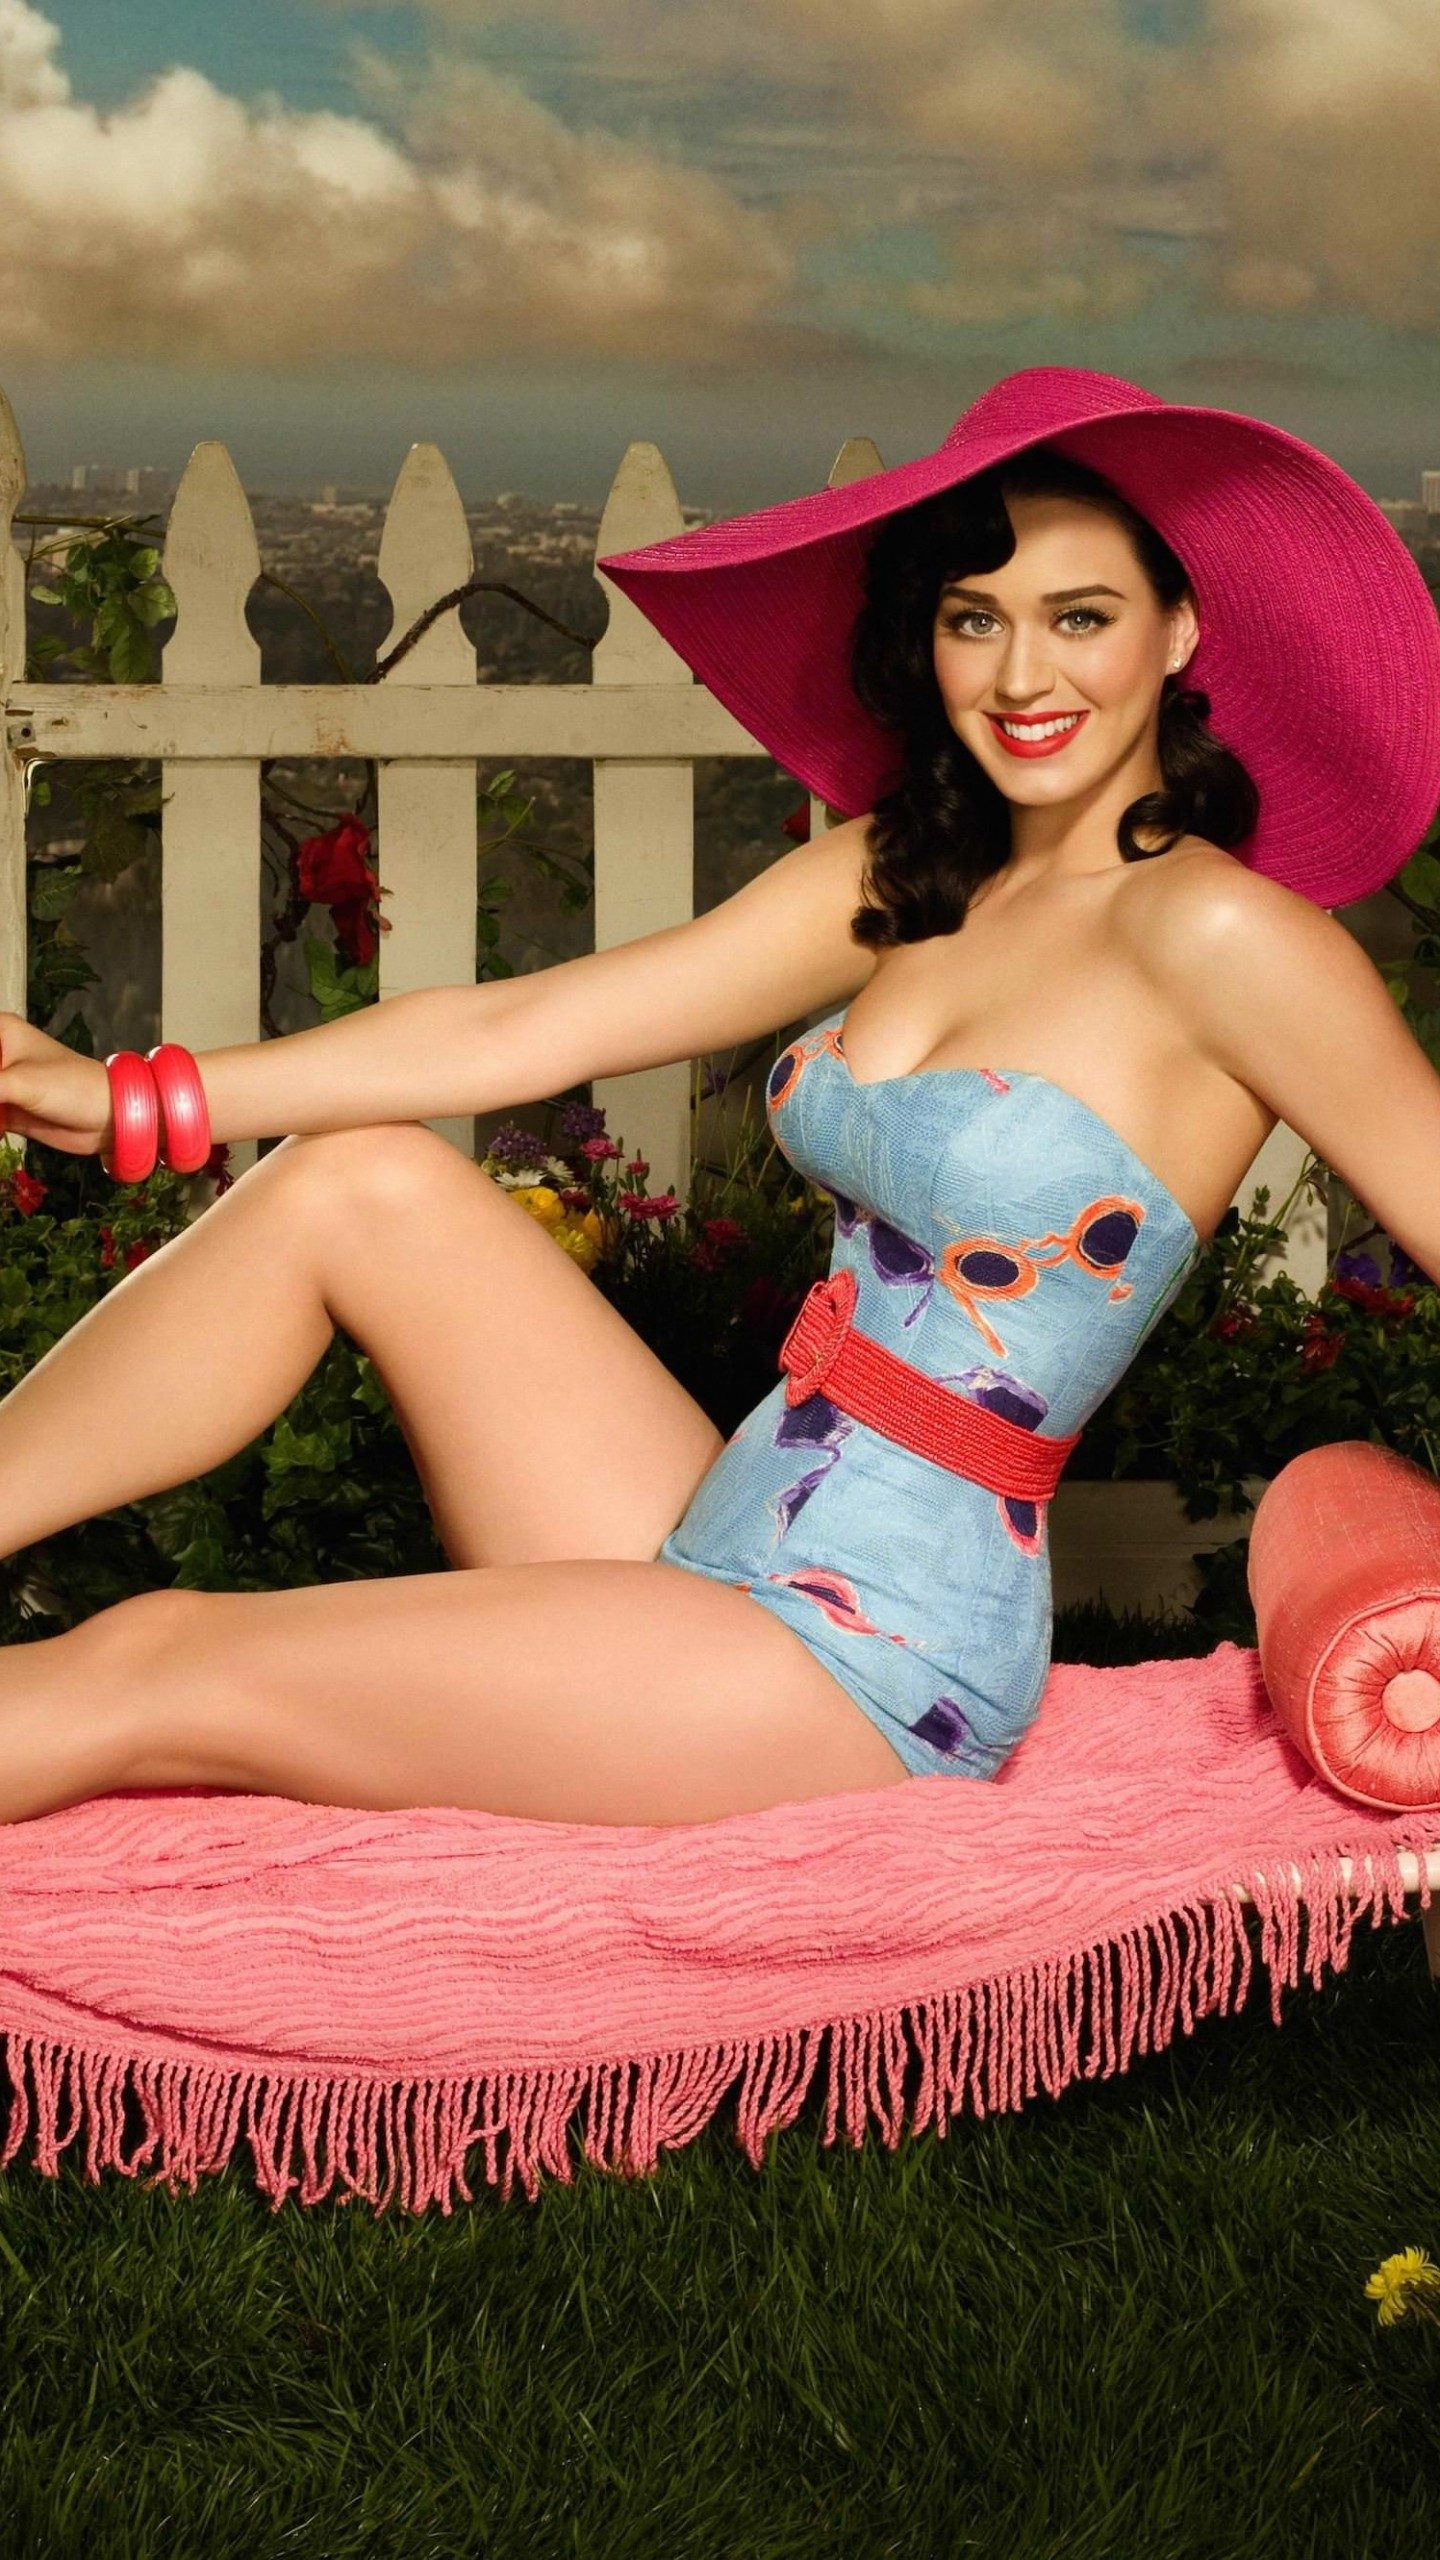 Katy Perry Lying On Chair Body Figure Wallpaper for Google Nexus 6